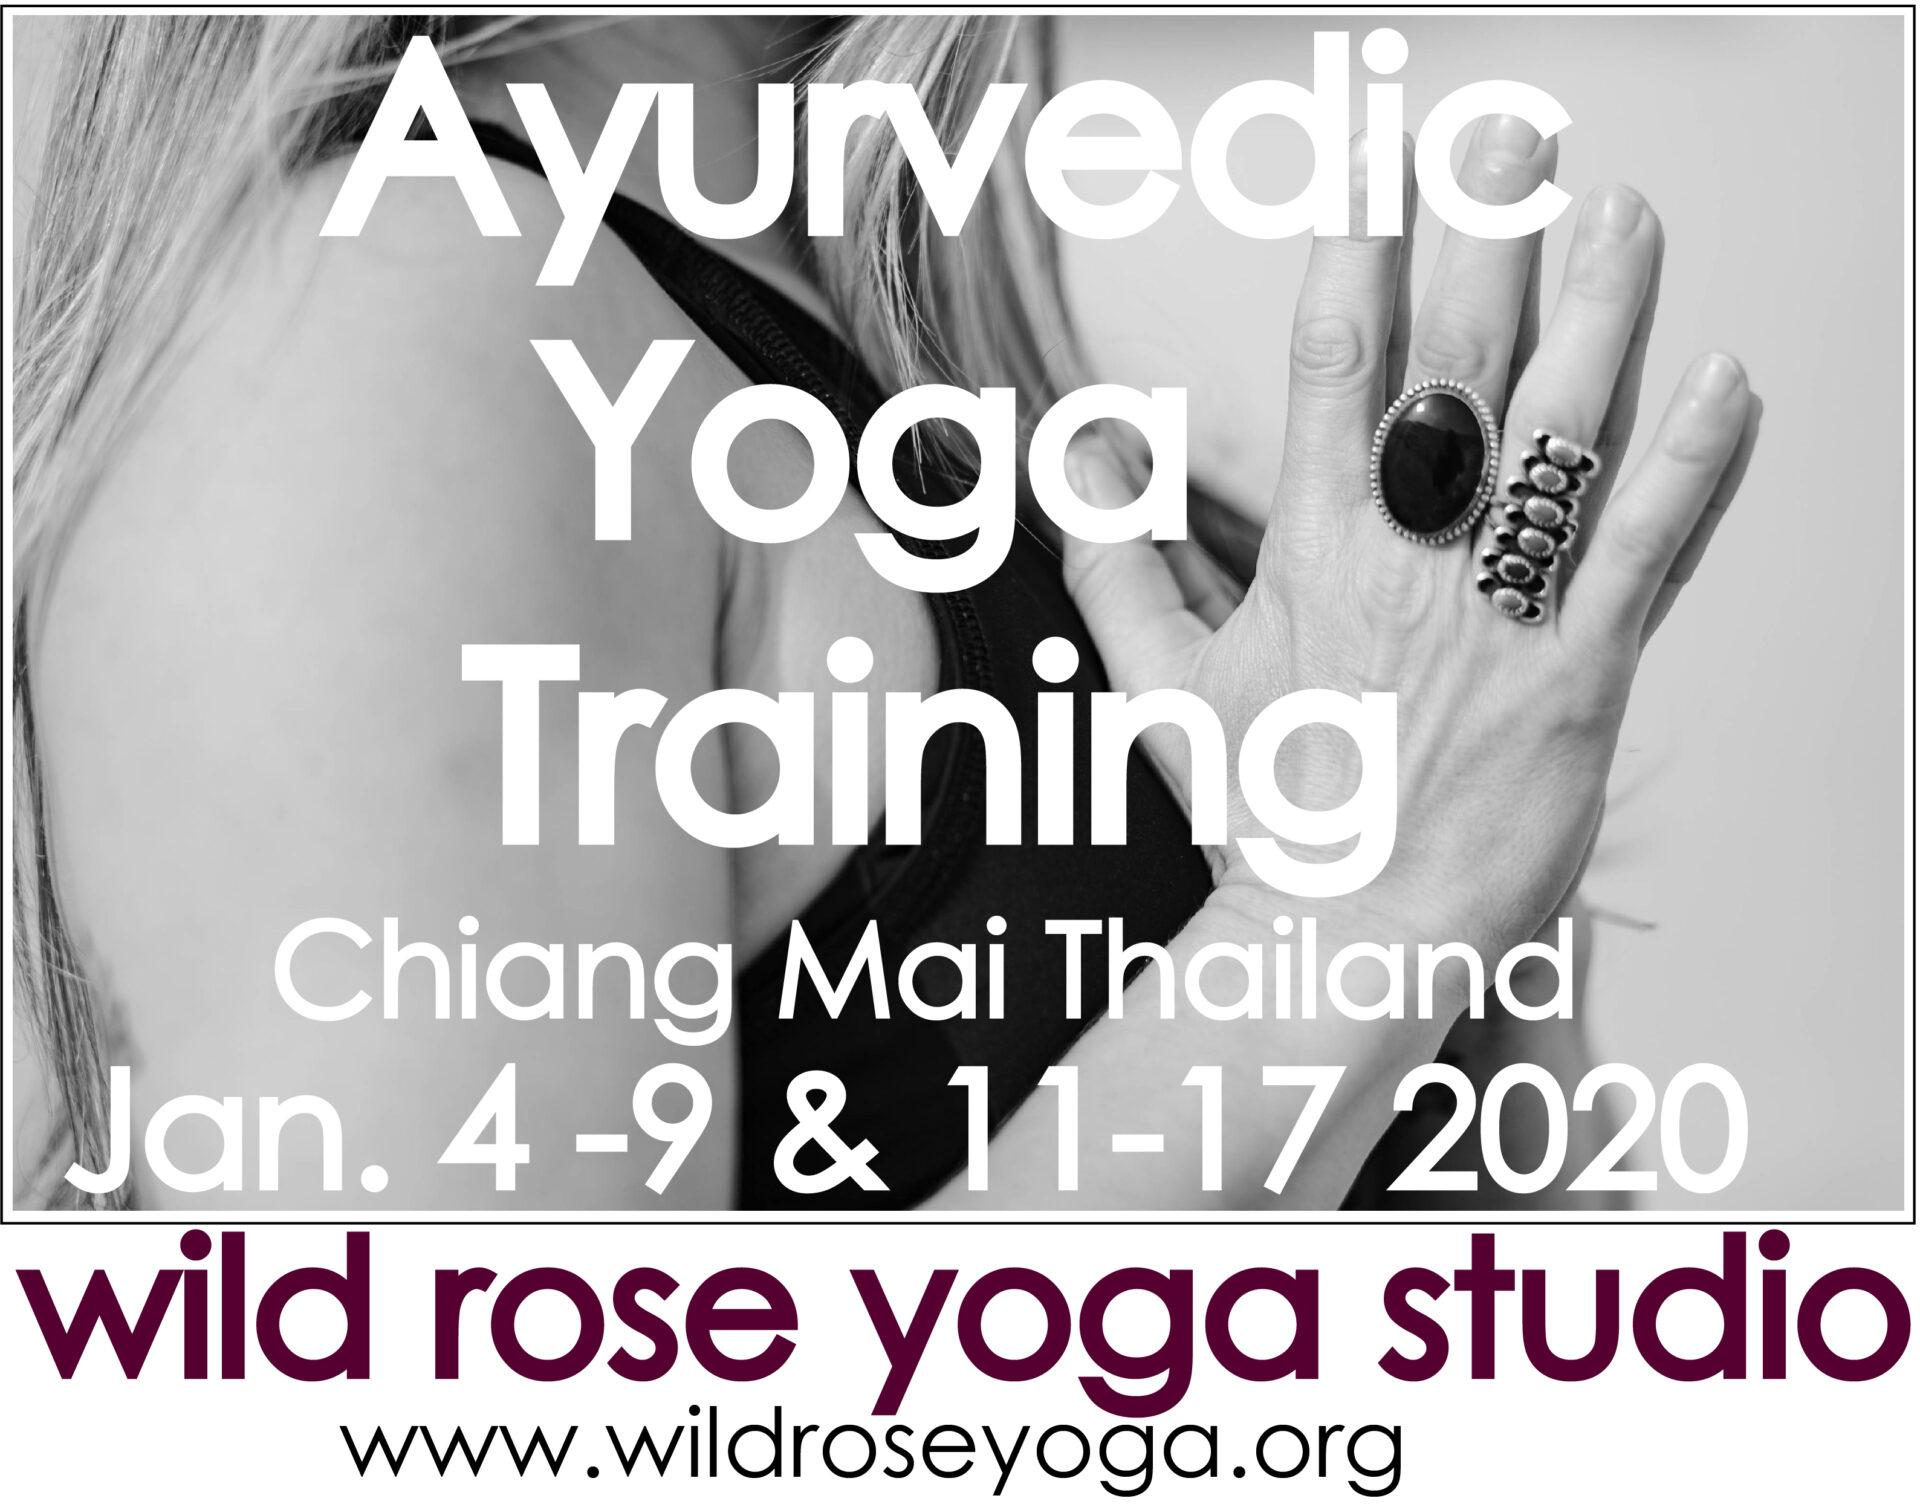 AYURVEDIC YOGA FOUNDATIONS IMMERSION COURSE I